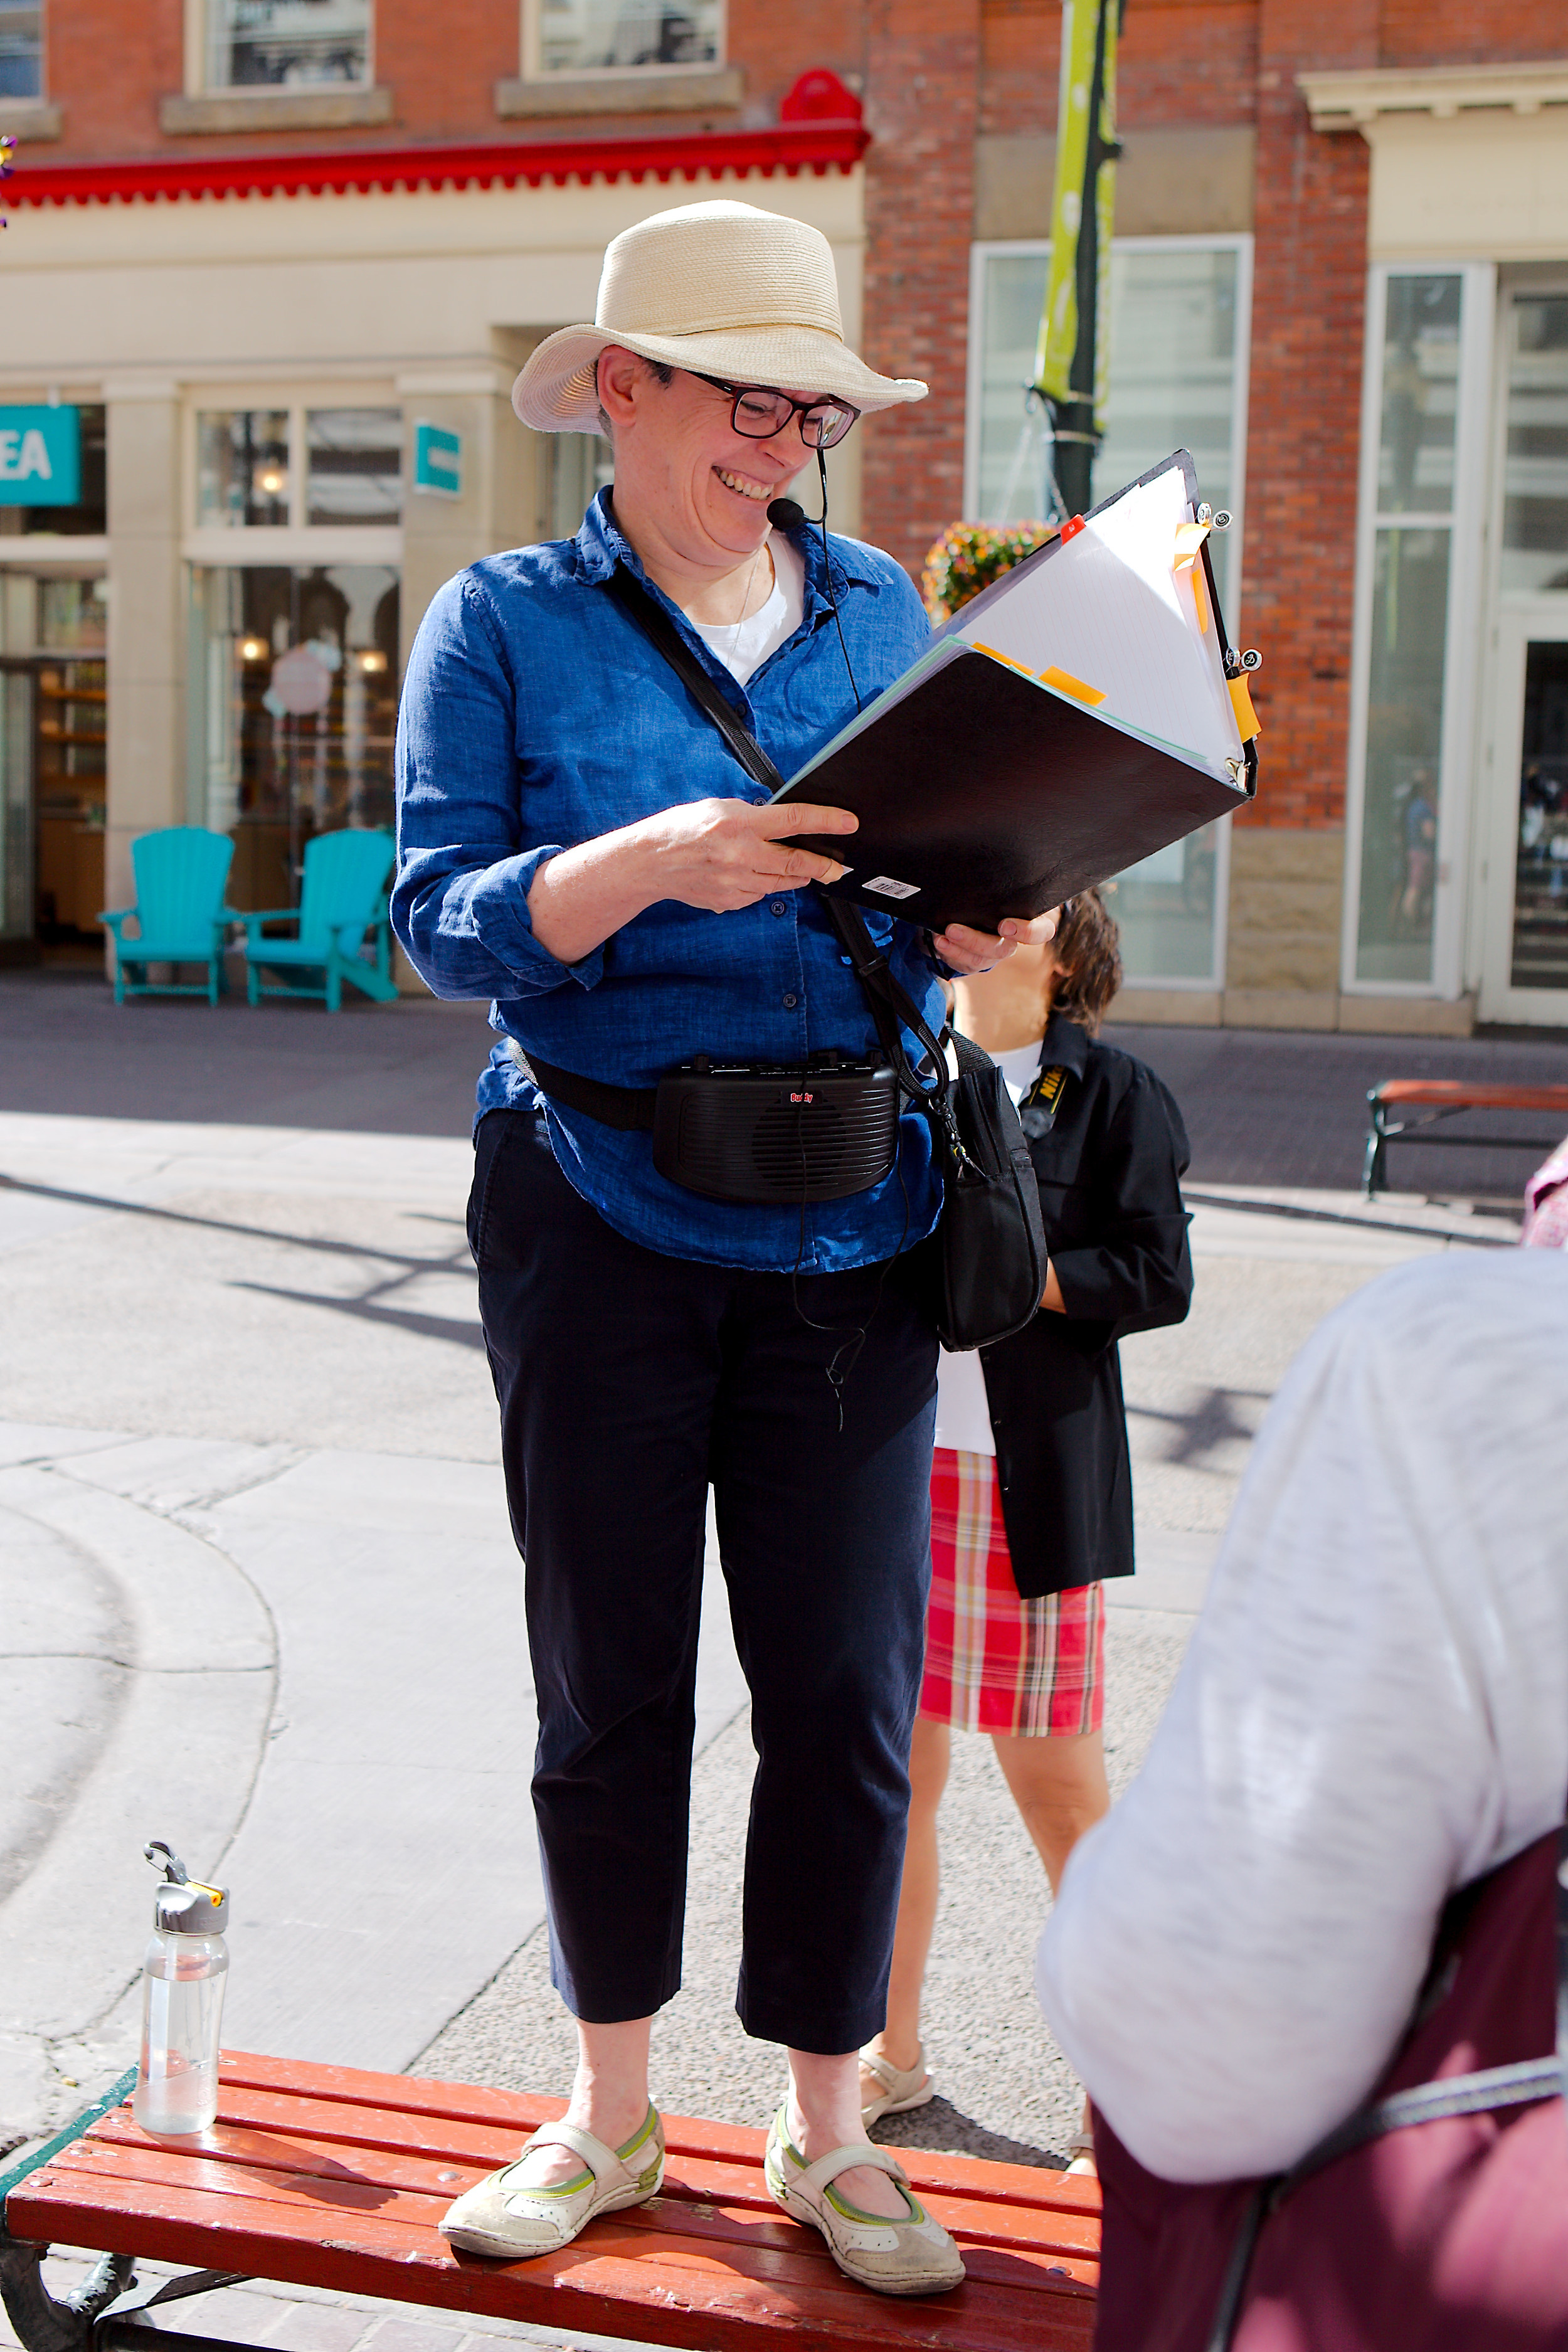 Life is good when you get to wear a headset, stand on a bench and tell Calgary stories in the sun. (Photo: Reg Tiangha)